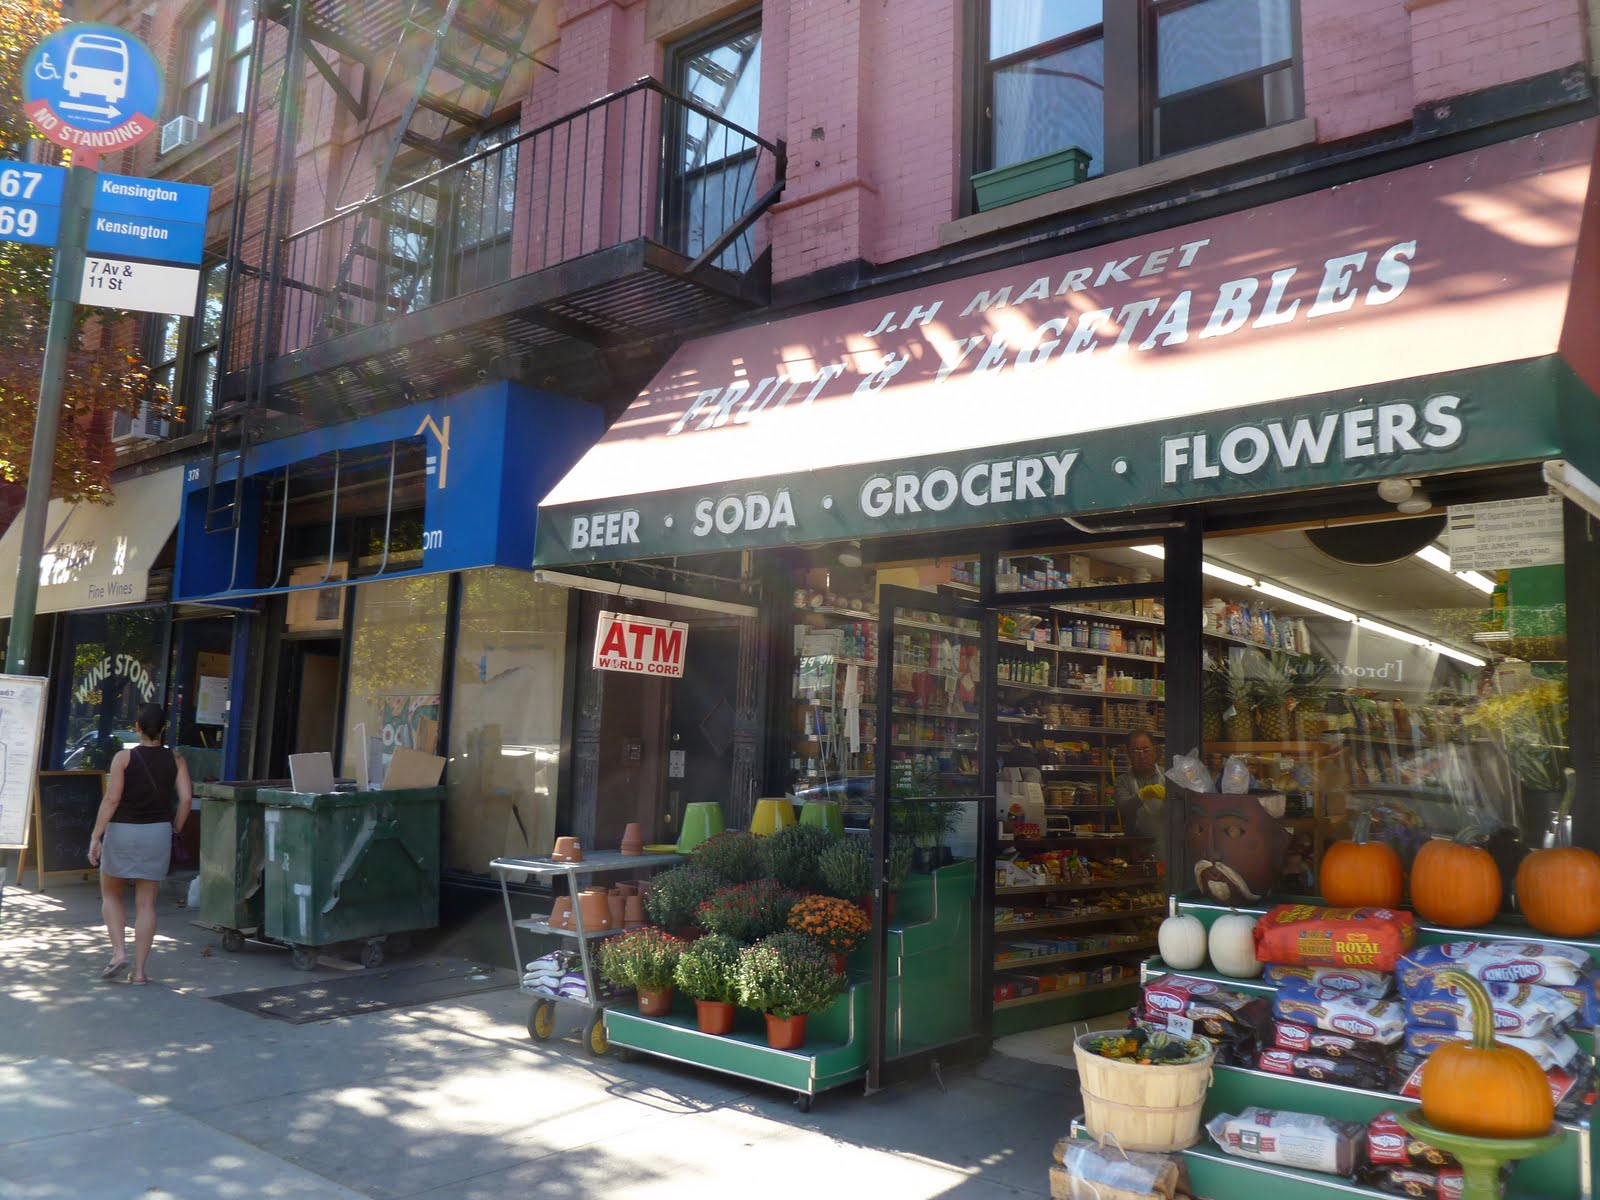 Blue apron park slope - J H Market The Small Bodega Owned By The Lee Family On Seventh Between 11th And 12th Has Taken Over The Vacated Real Estate Office Next Door And Is In